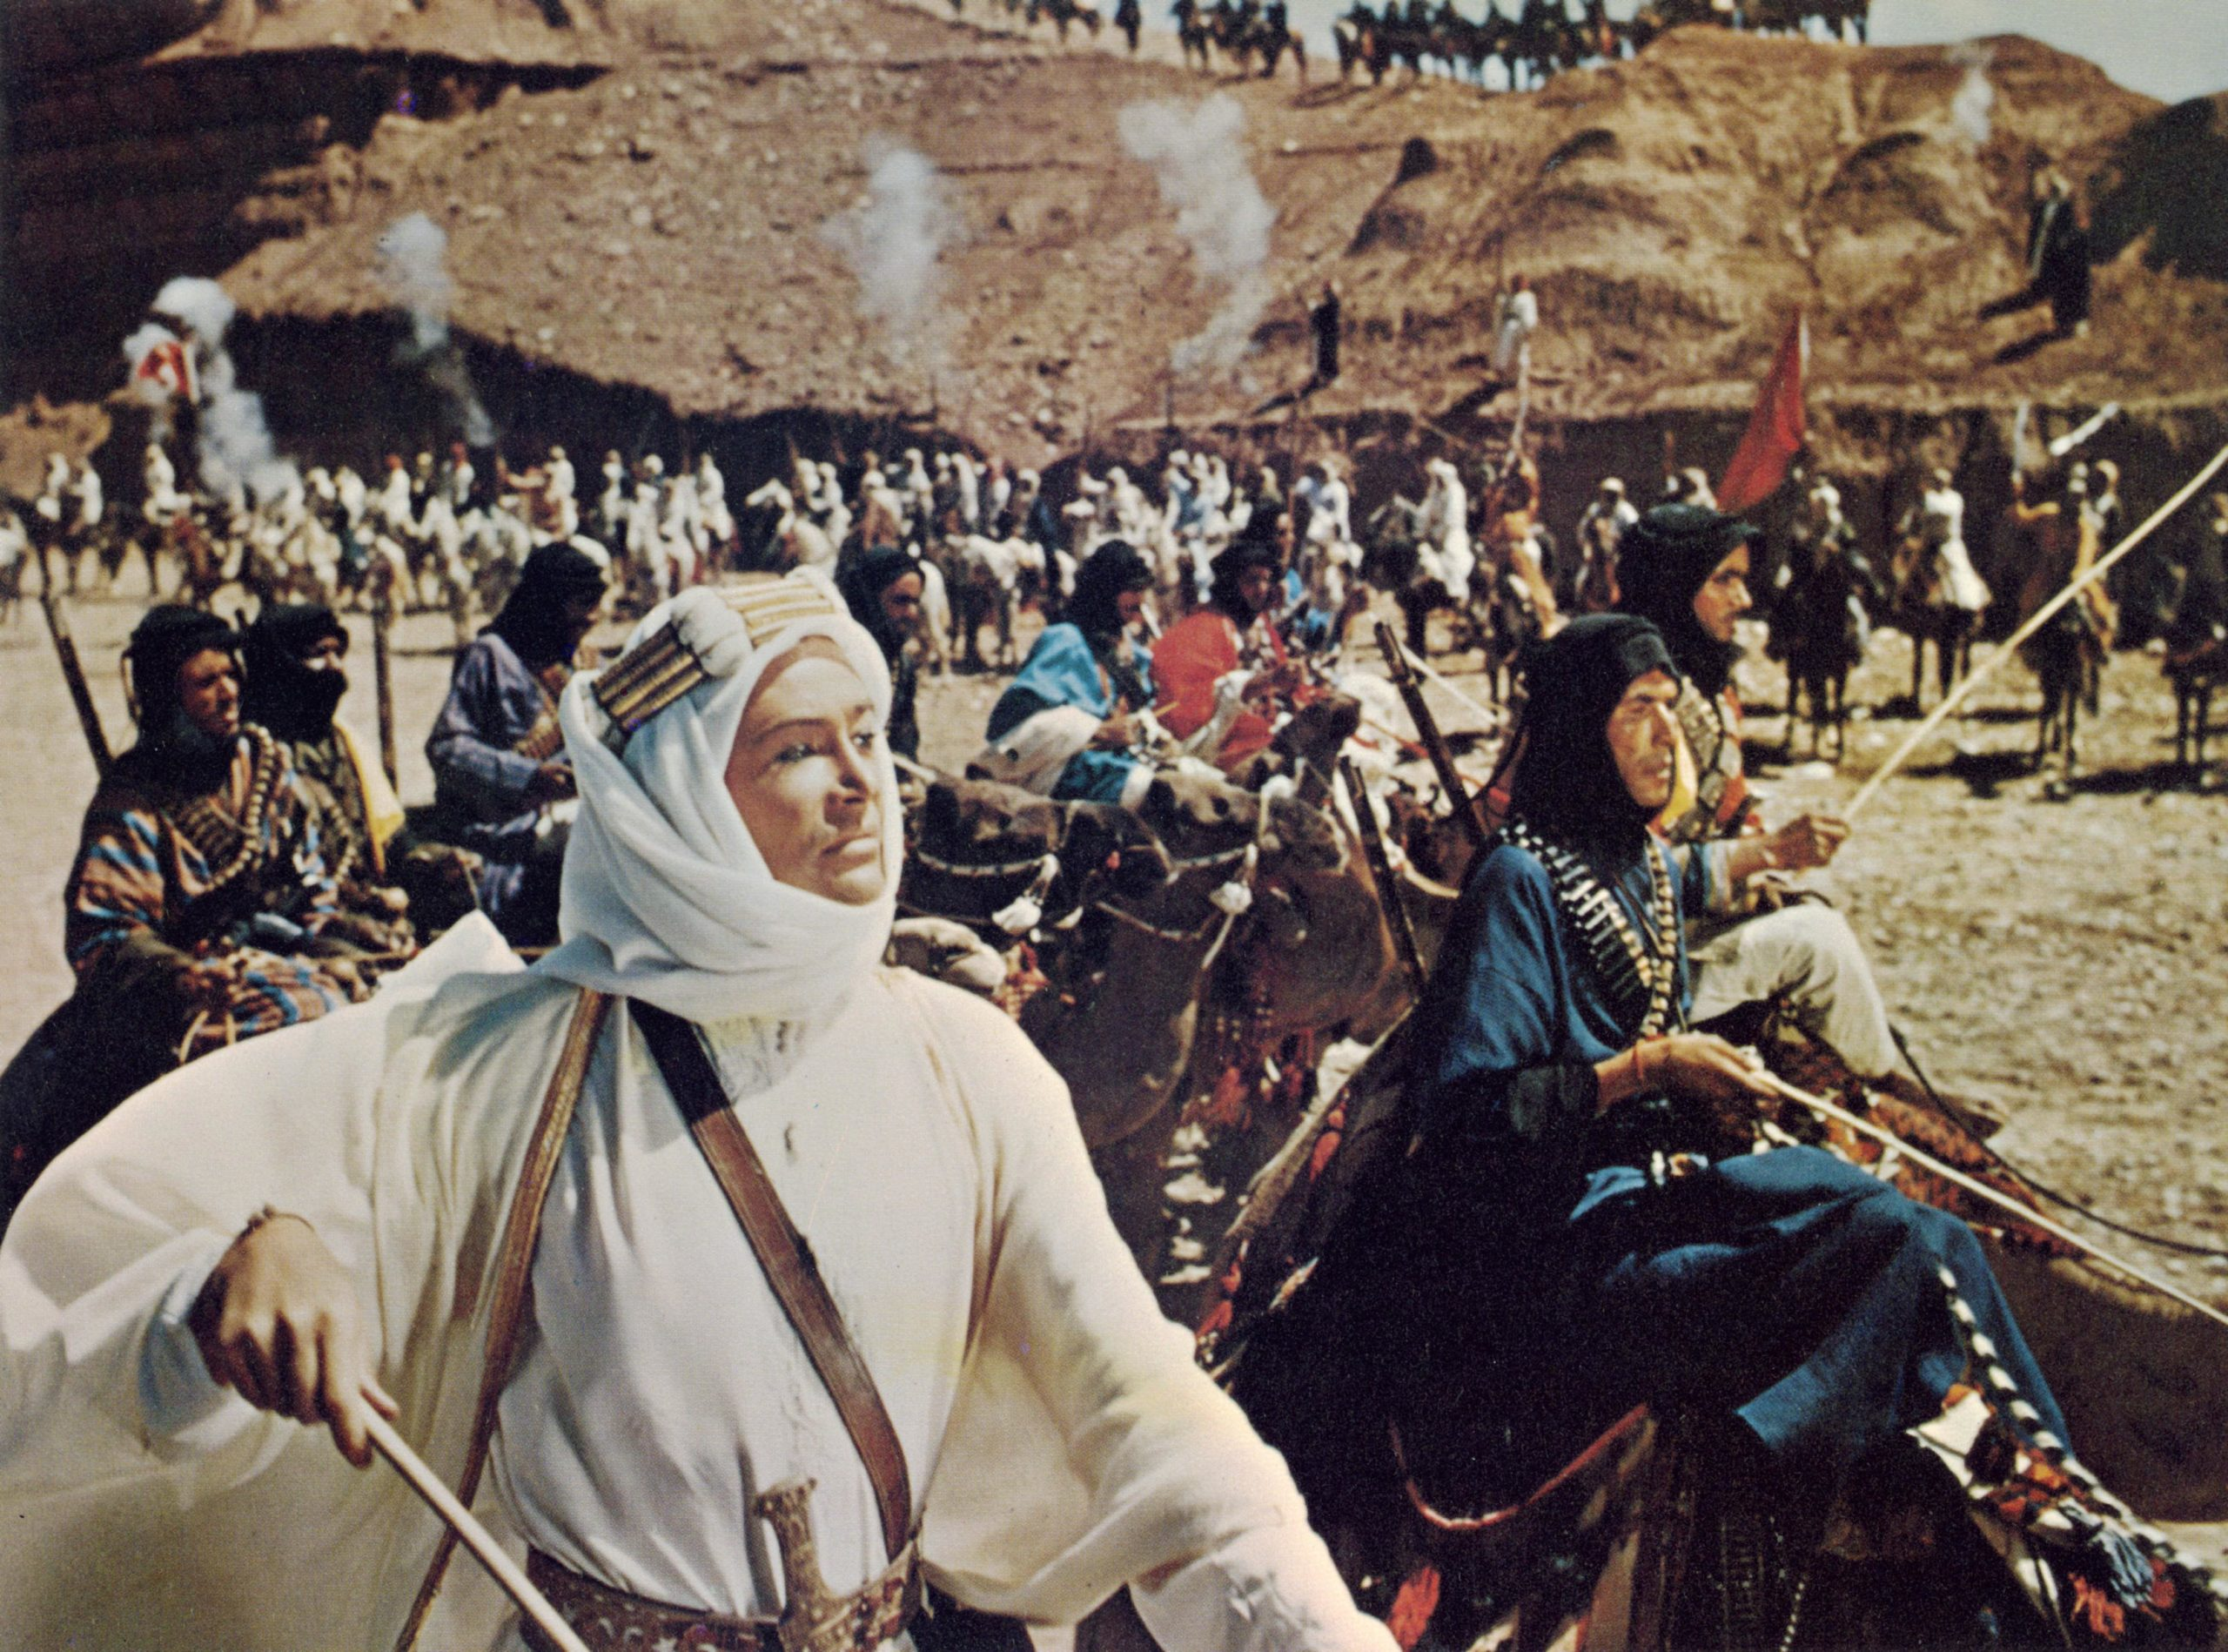 Peter O'Toole as Lawrence Of Arabia in a scene from director David Lean's 1962 epic historical action-adventure flick